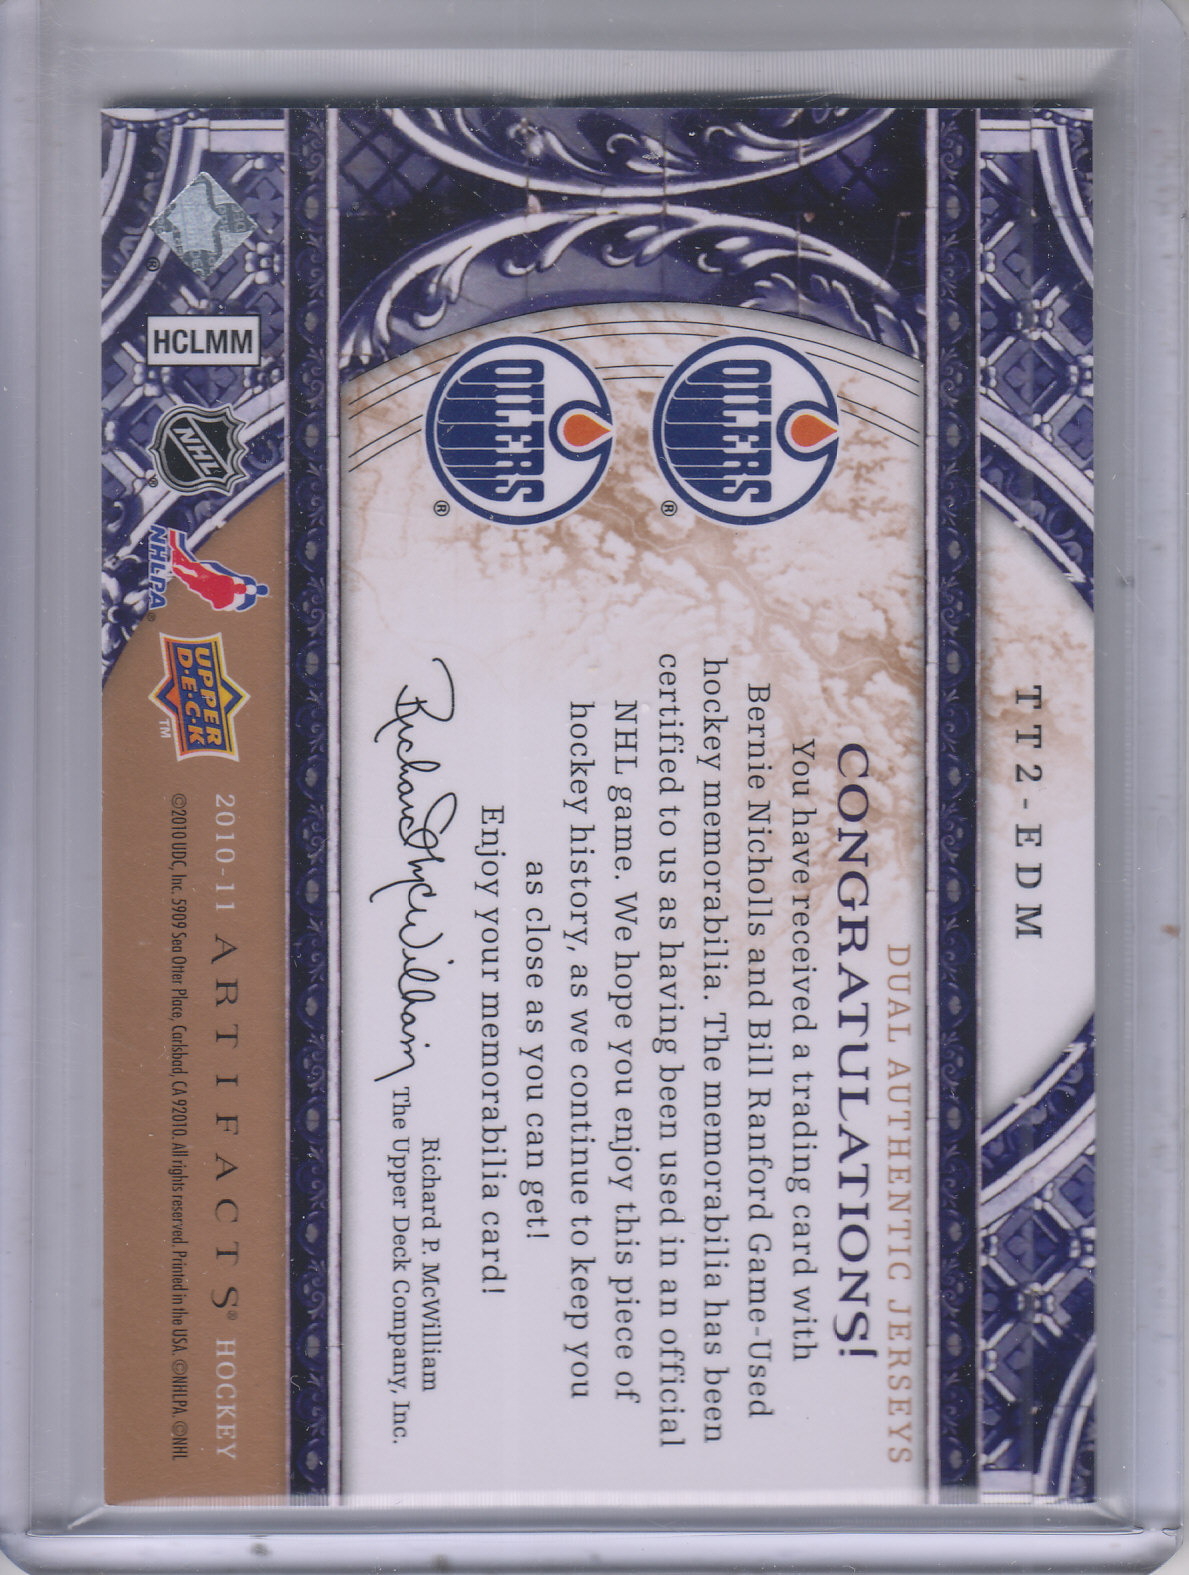 2010-11 Artifacts Tundra Tandems Bronze #TT2EDM Bill Ranford/Bernie Nicholls back image